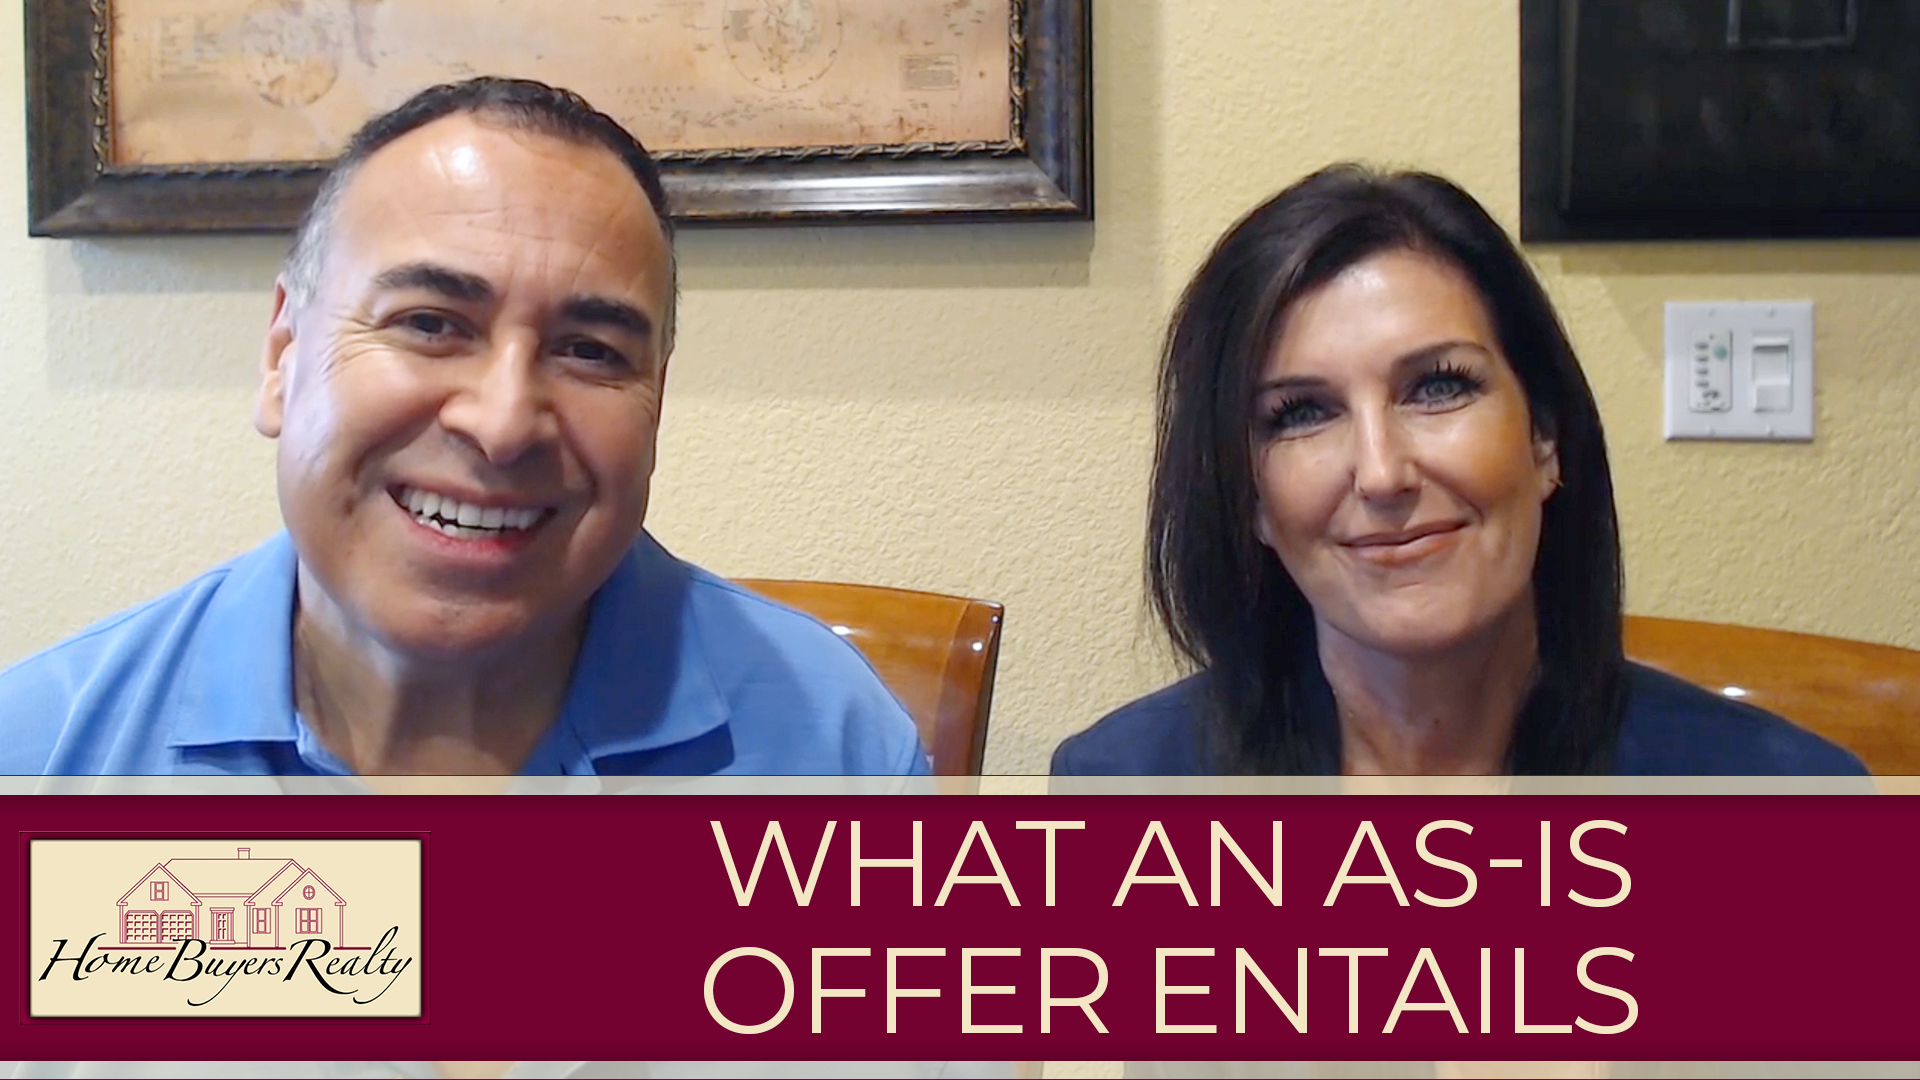 What Is an As-Is Offer?